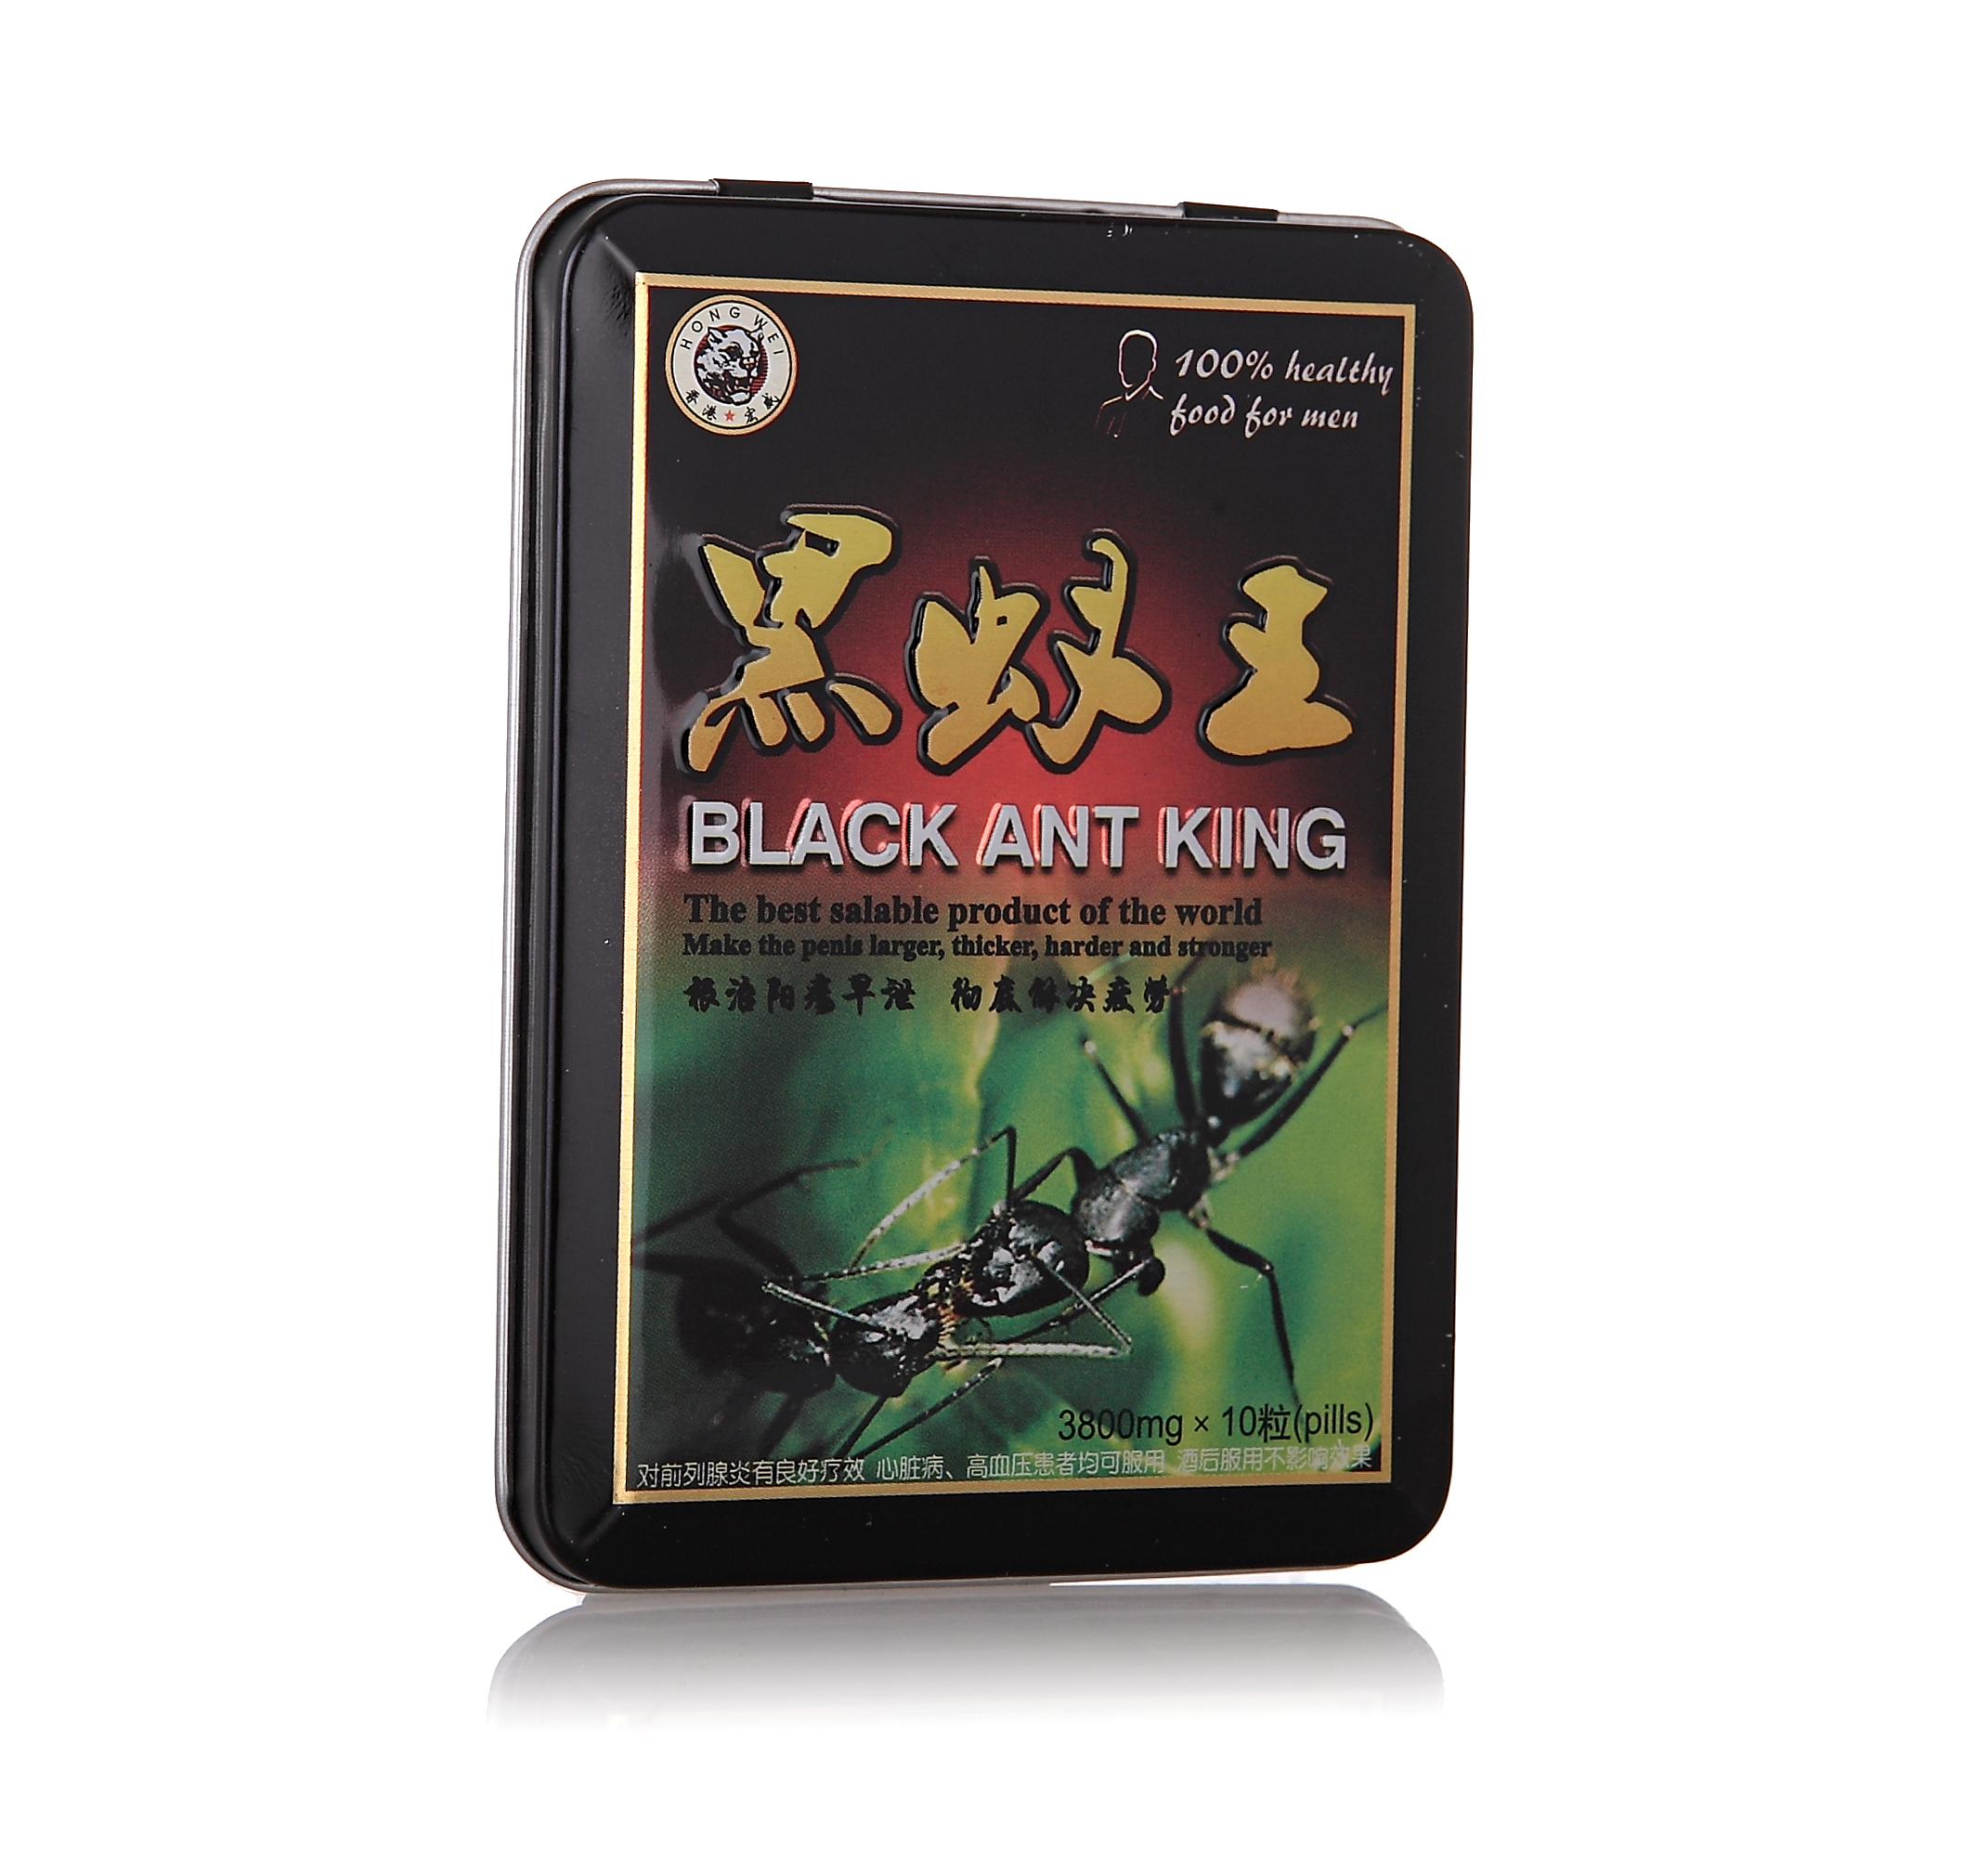 黒蟻王(BLACK ANT KING)